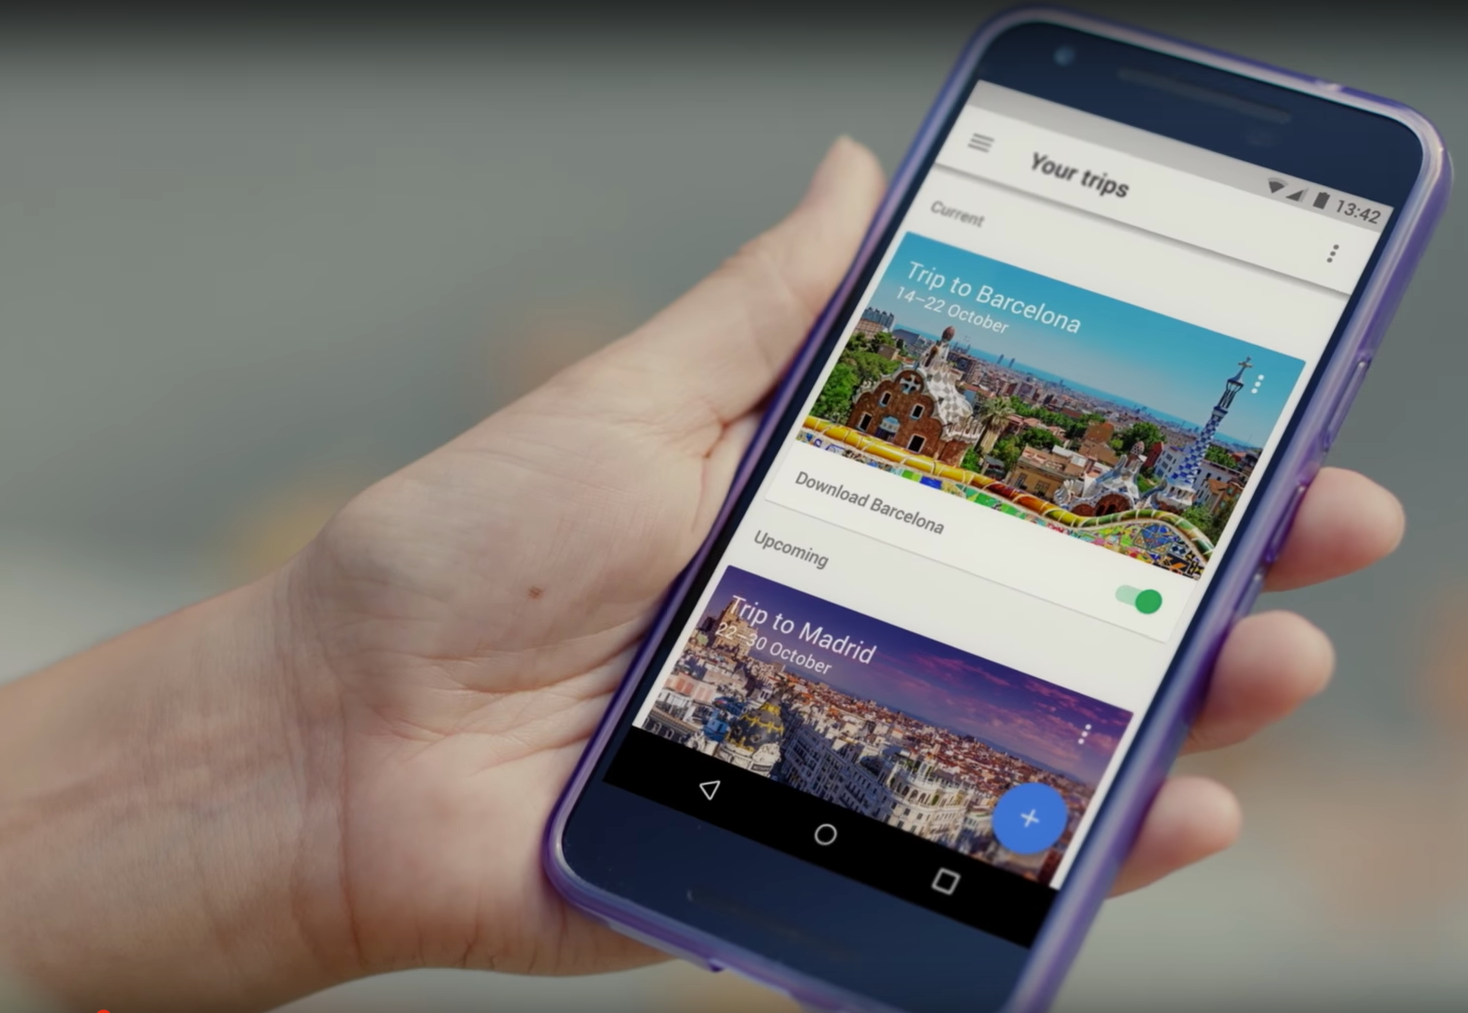 Google Trips Trip-Planning App Launches on iOS, Android